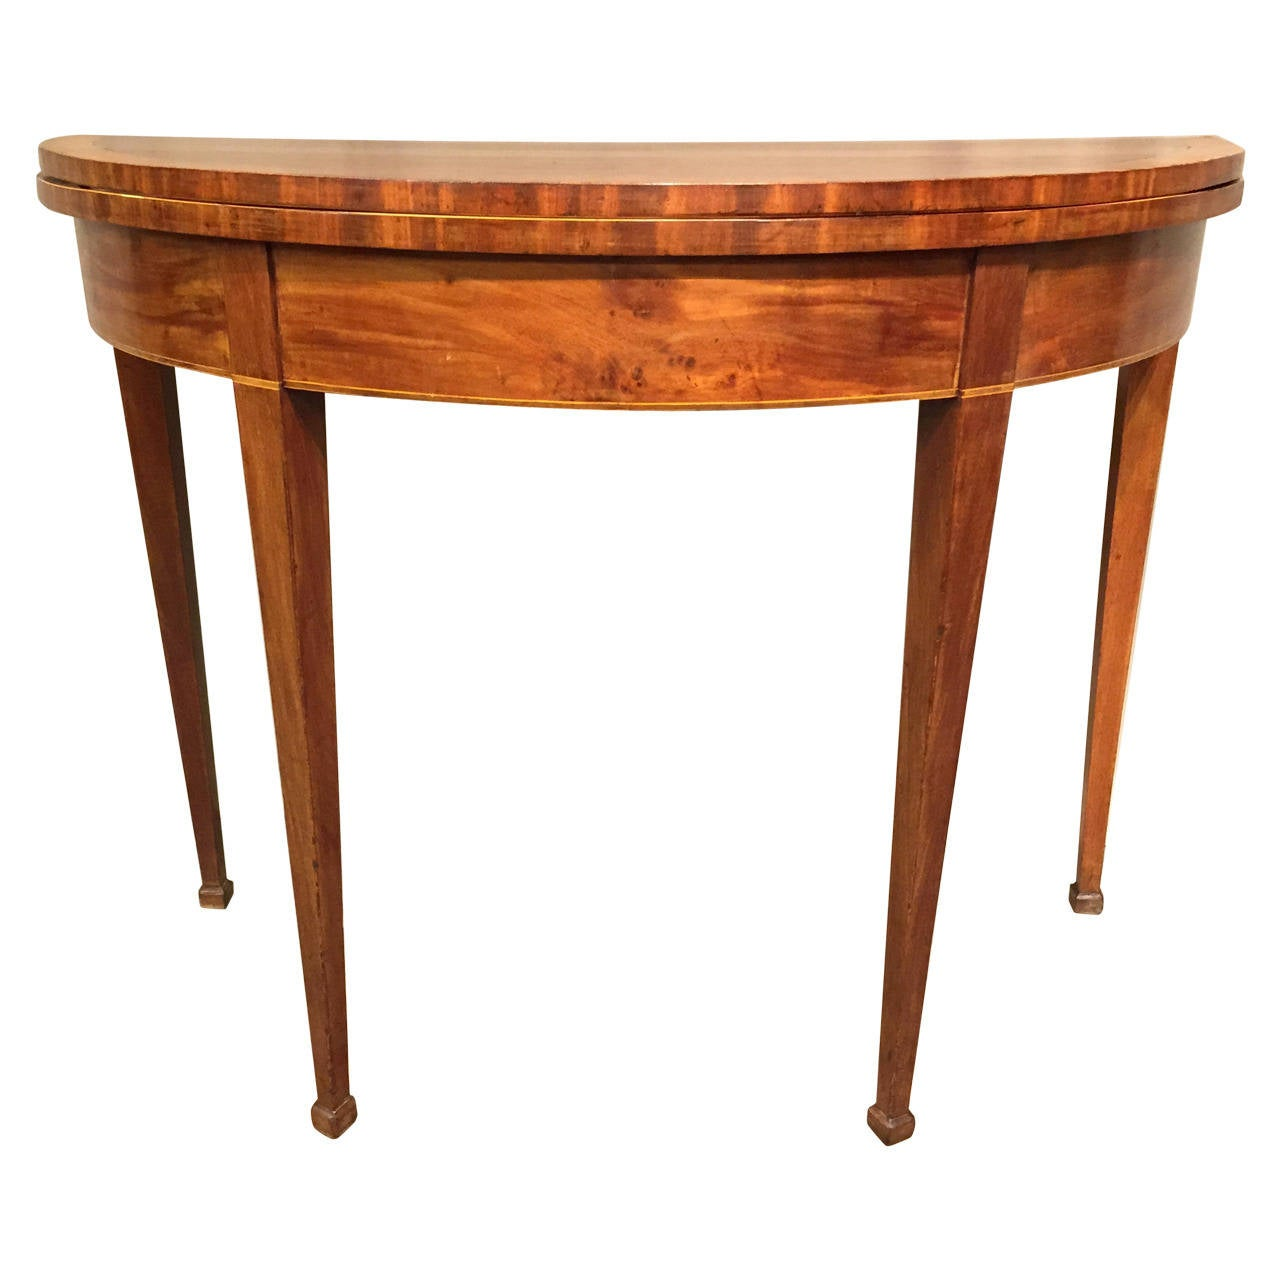 Late 19th c swedish demi lune table at 1stdibs - Table demi lune murale ...